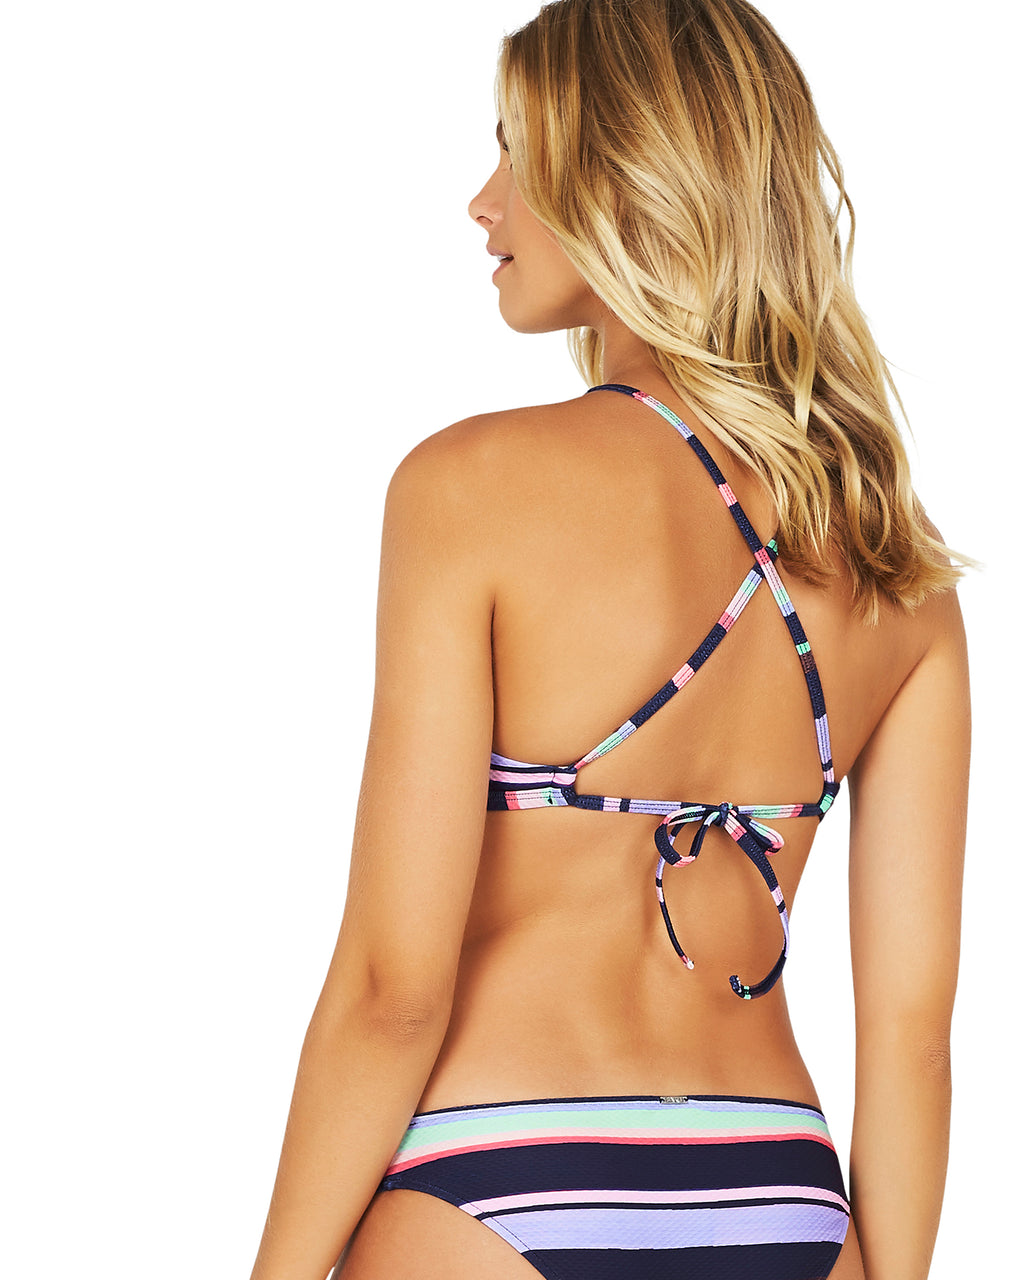 SARDINIA HIGH NECK LACE UP BRA BIKINI TOP